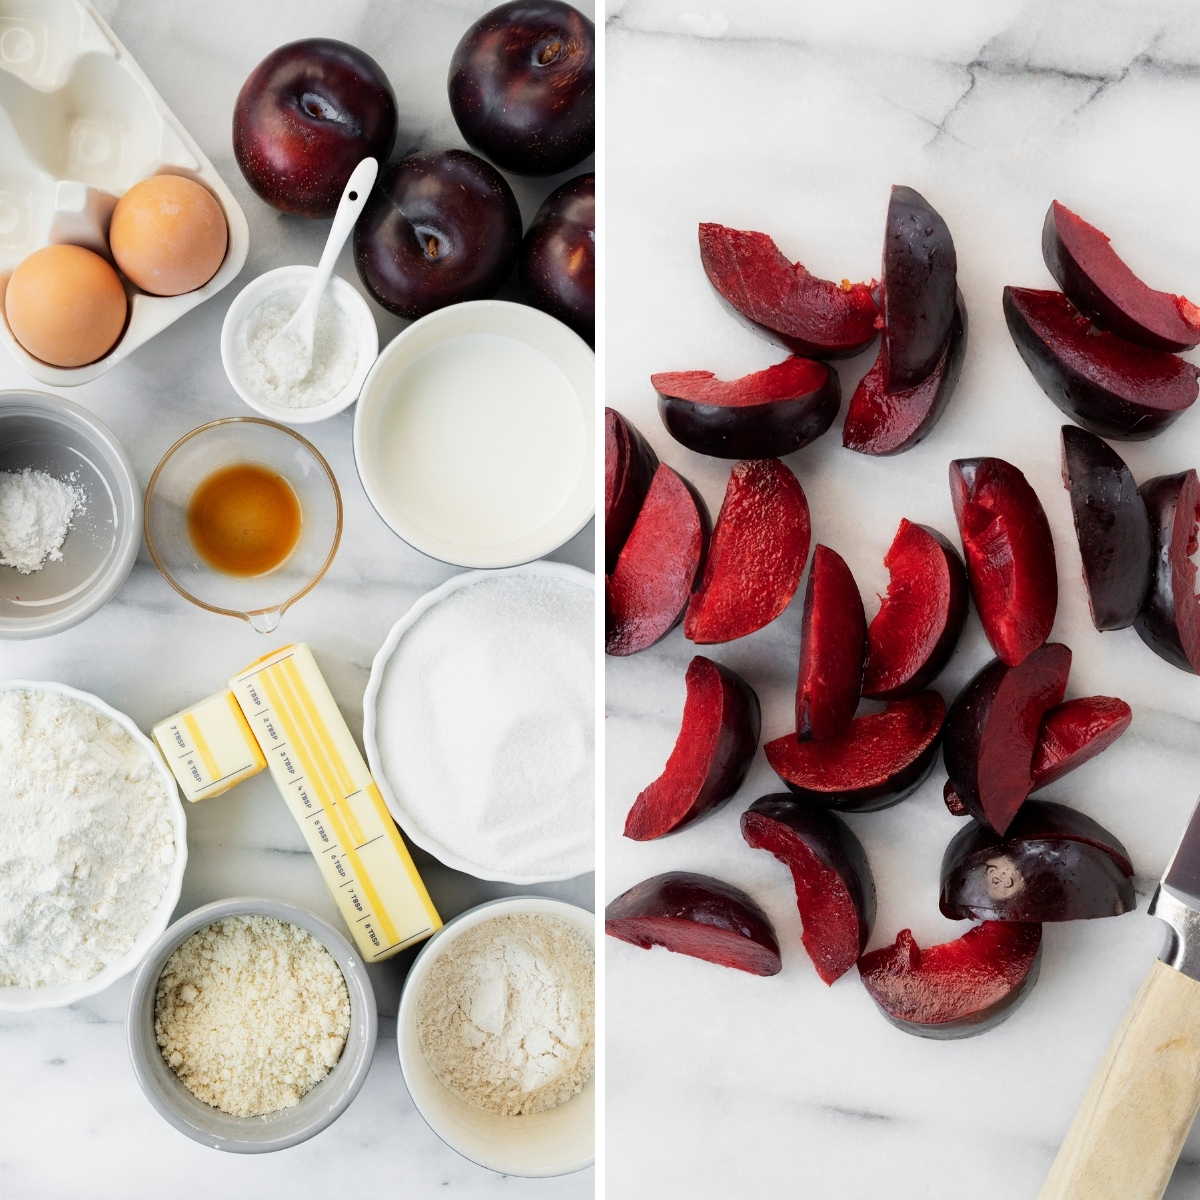 ingredients for plum cake, including sliced fresh red plums